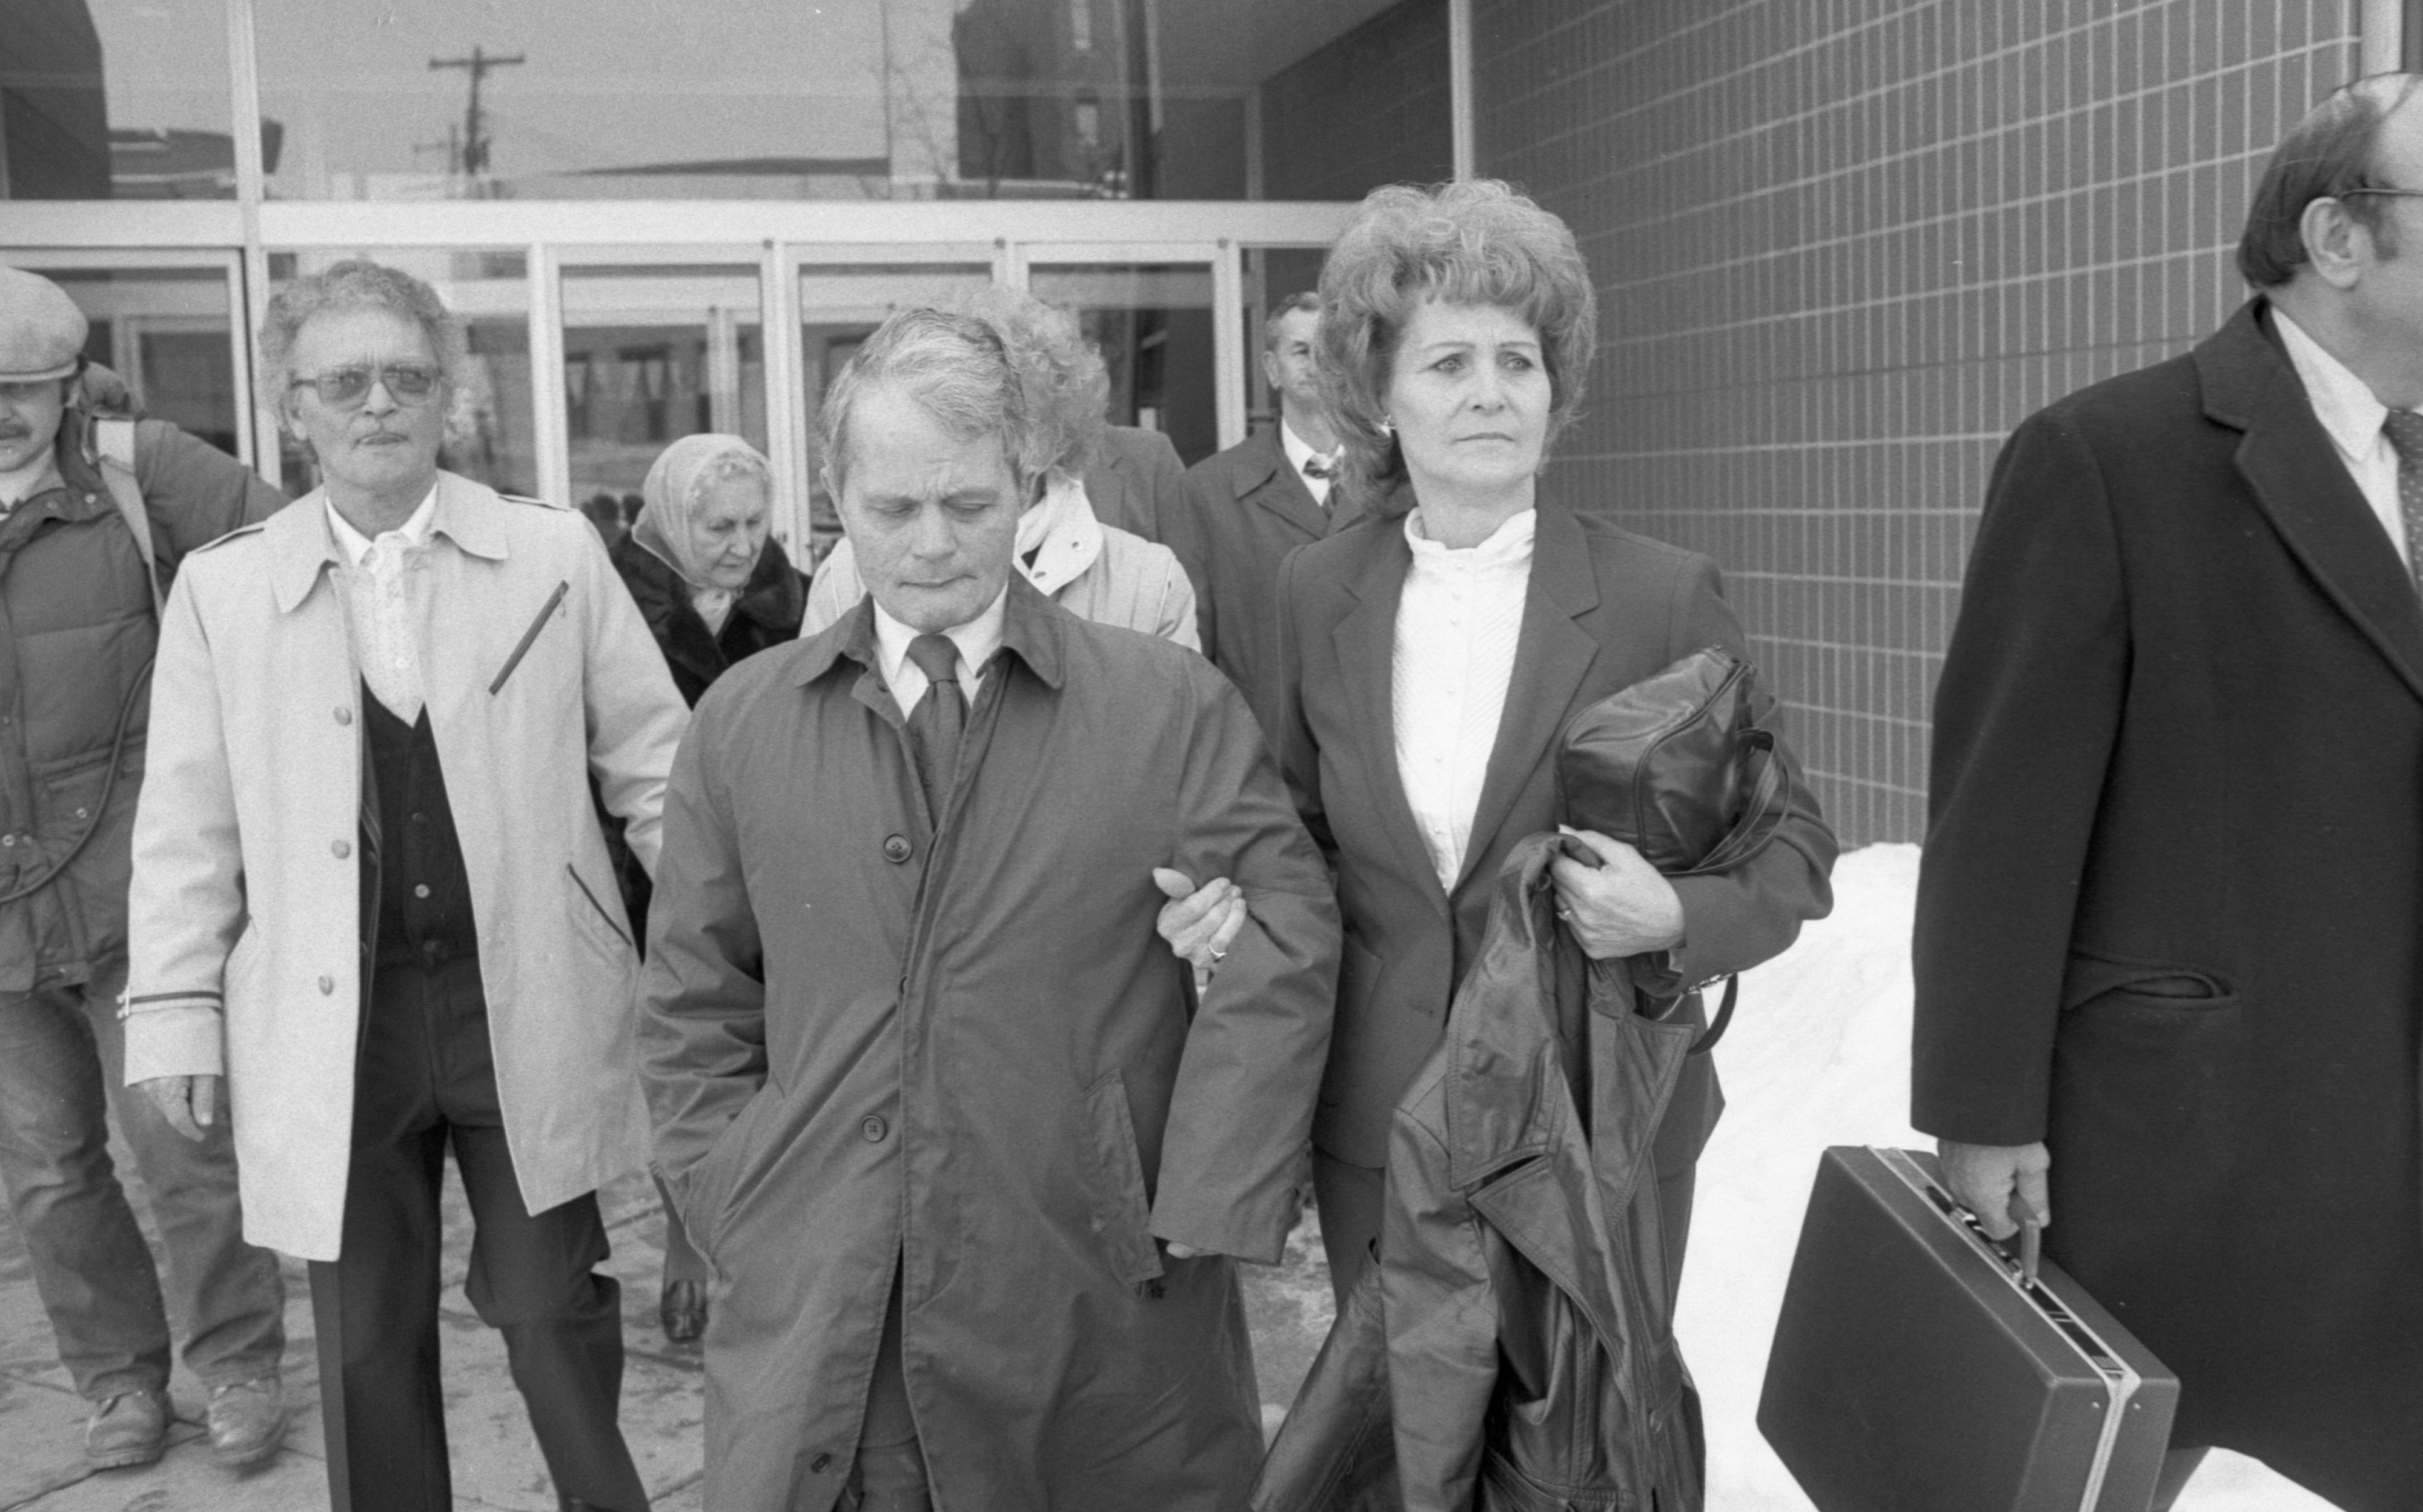 Bob Fulmer, Louis Molitoris, & Family Members, Leave Federal Court, February 1984 image